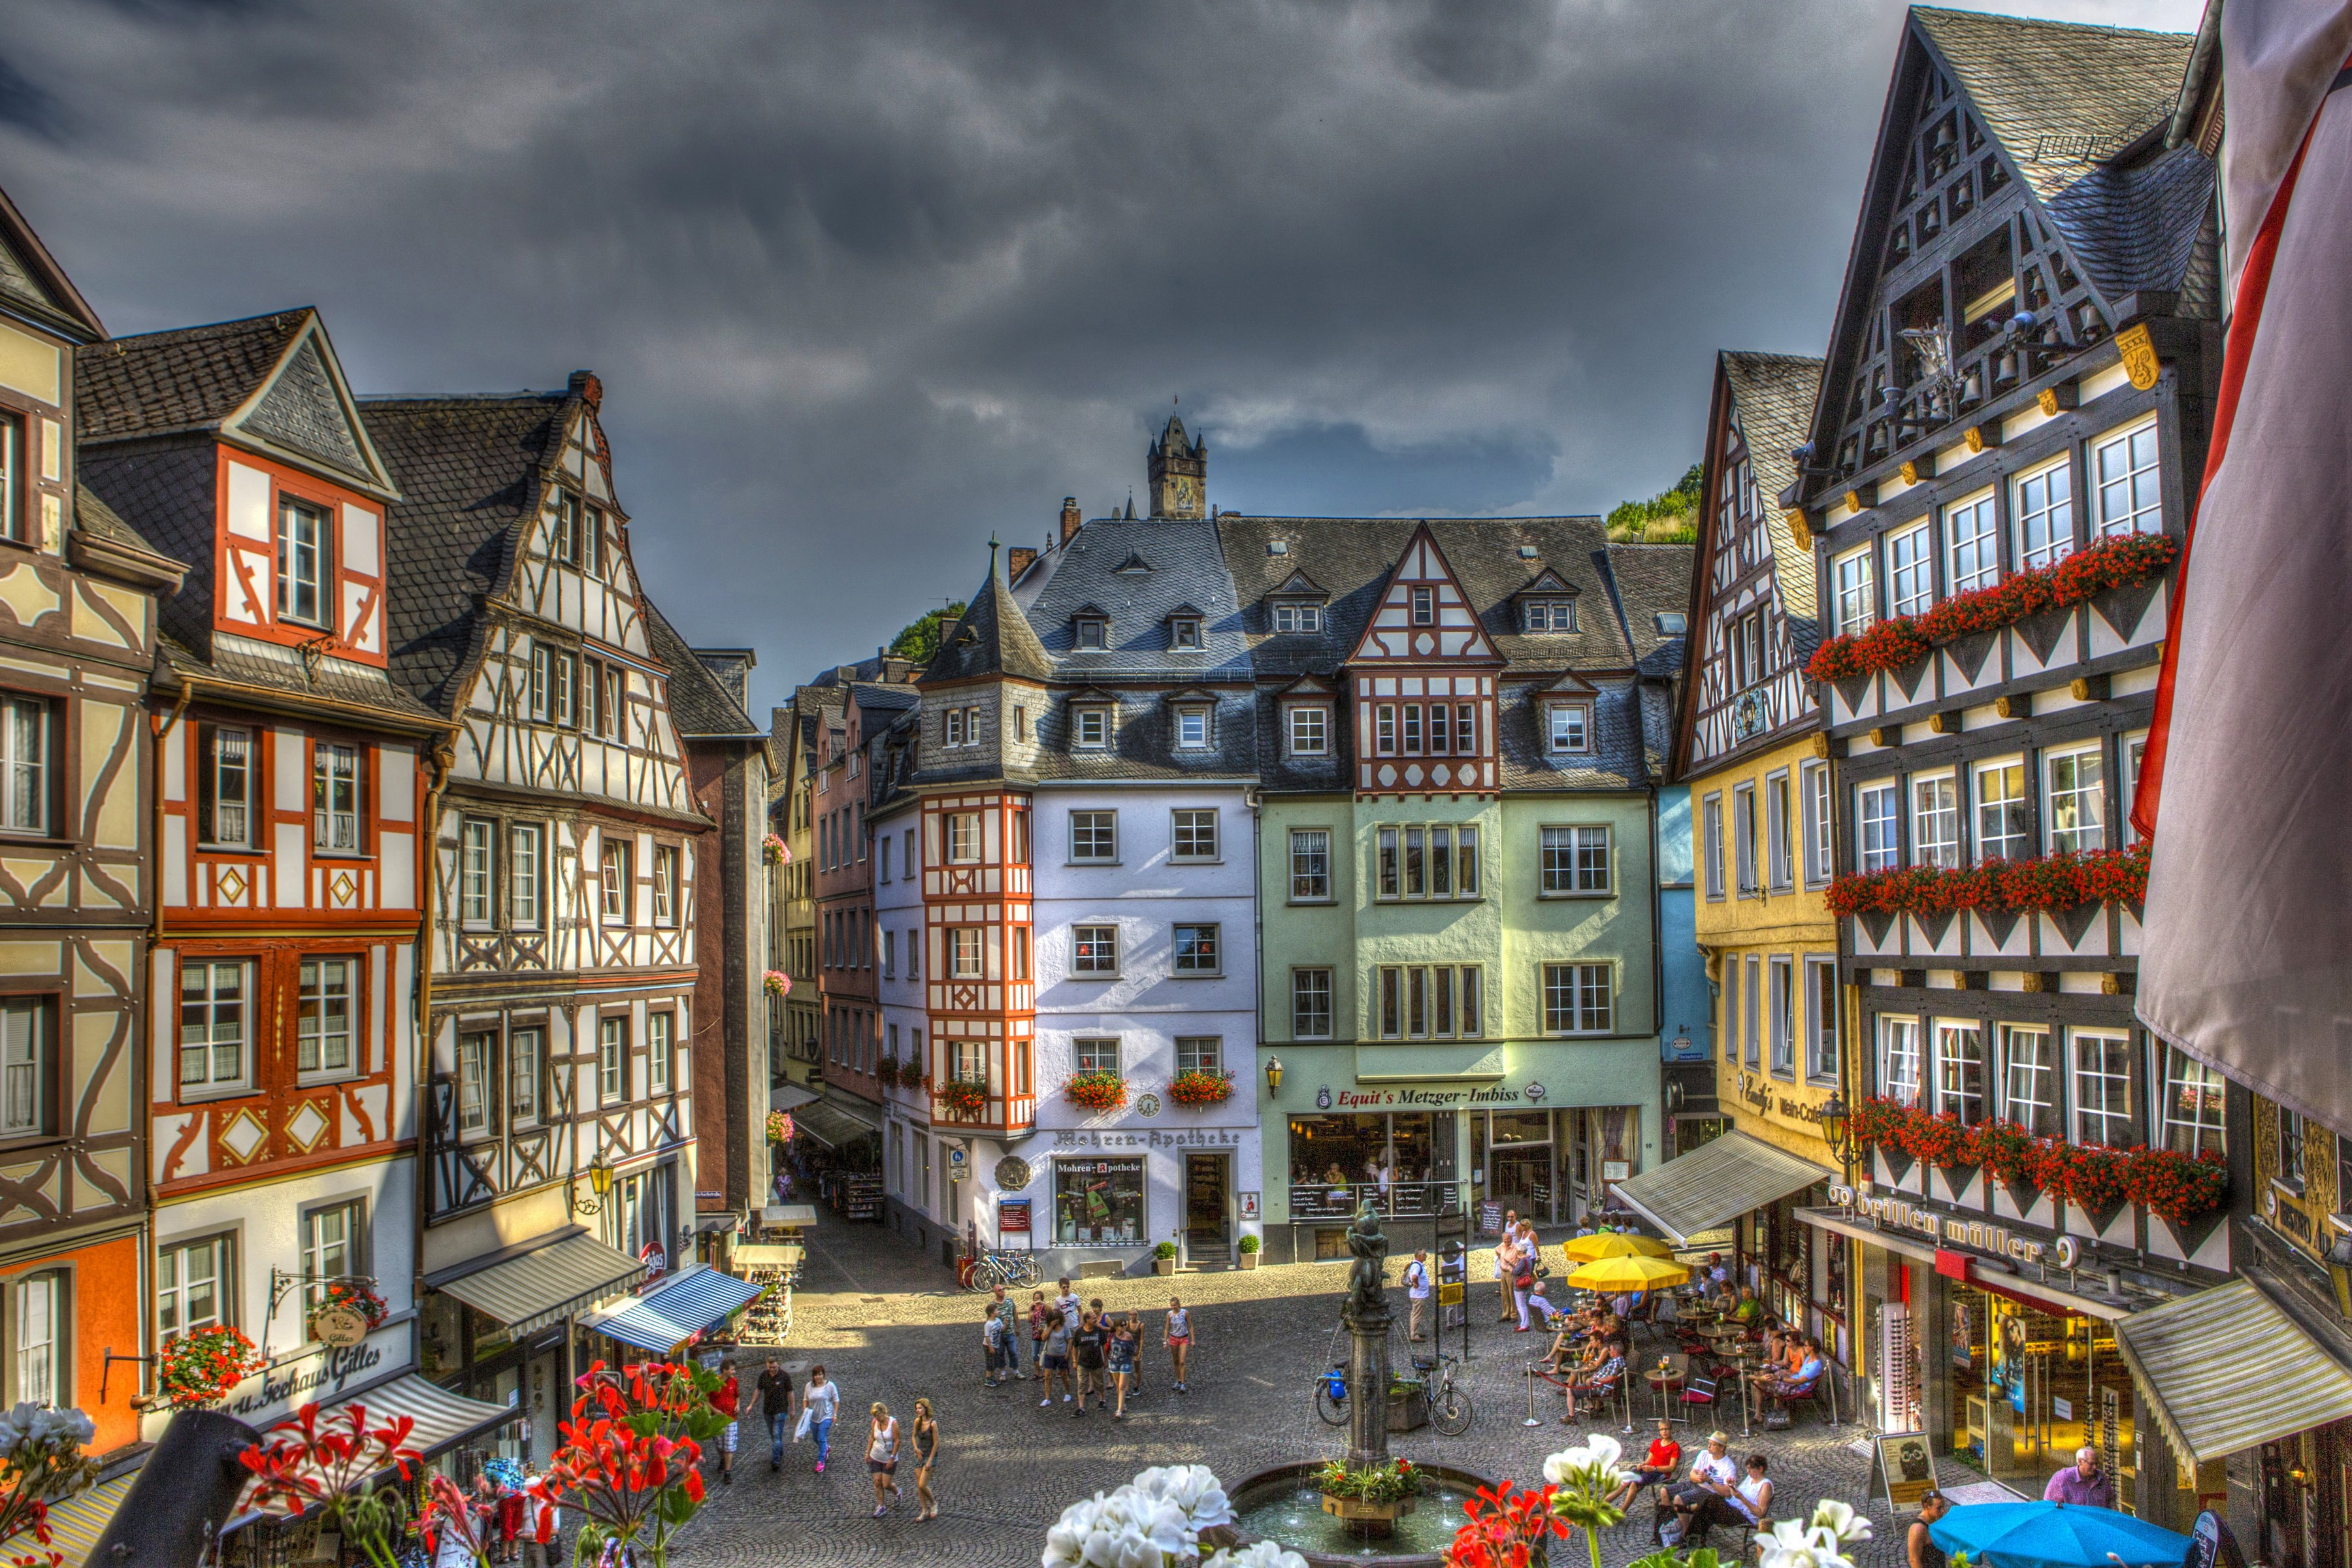 Cochem Germany  city pictures gallery : Germany House Cochem HDR Cities wallpaper   3600x2400   437574 ...